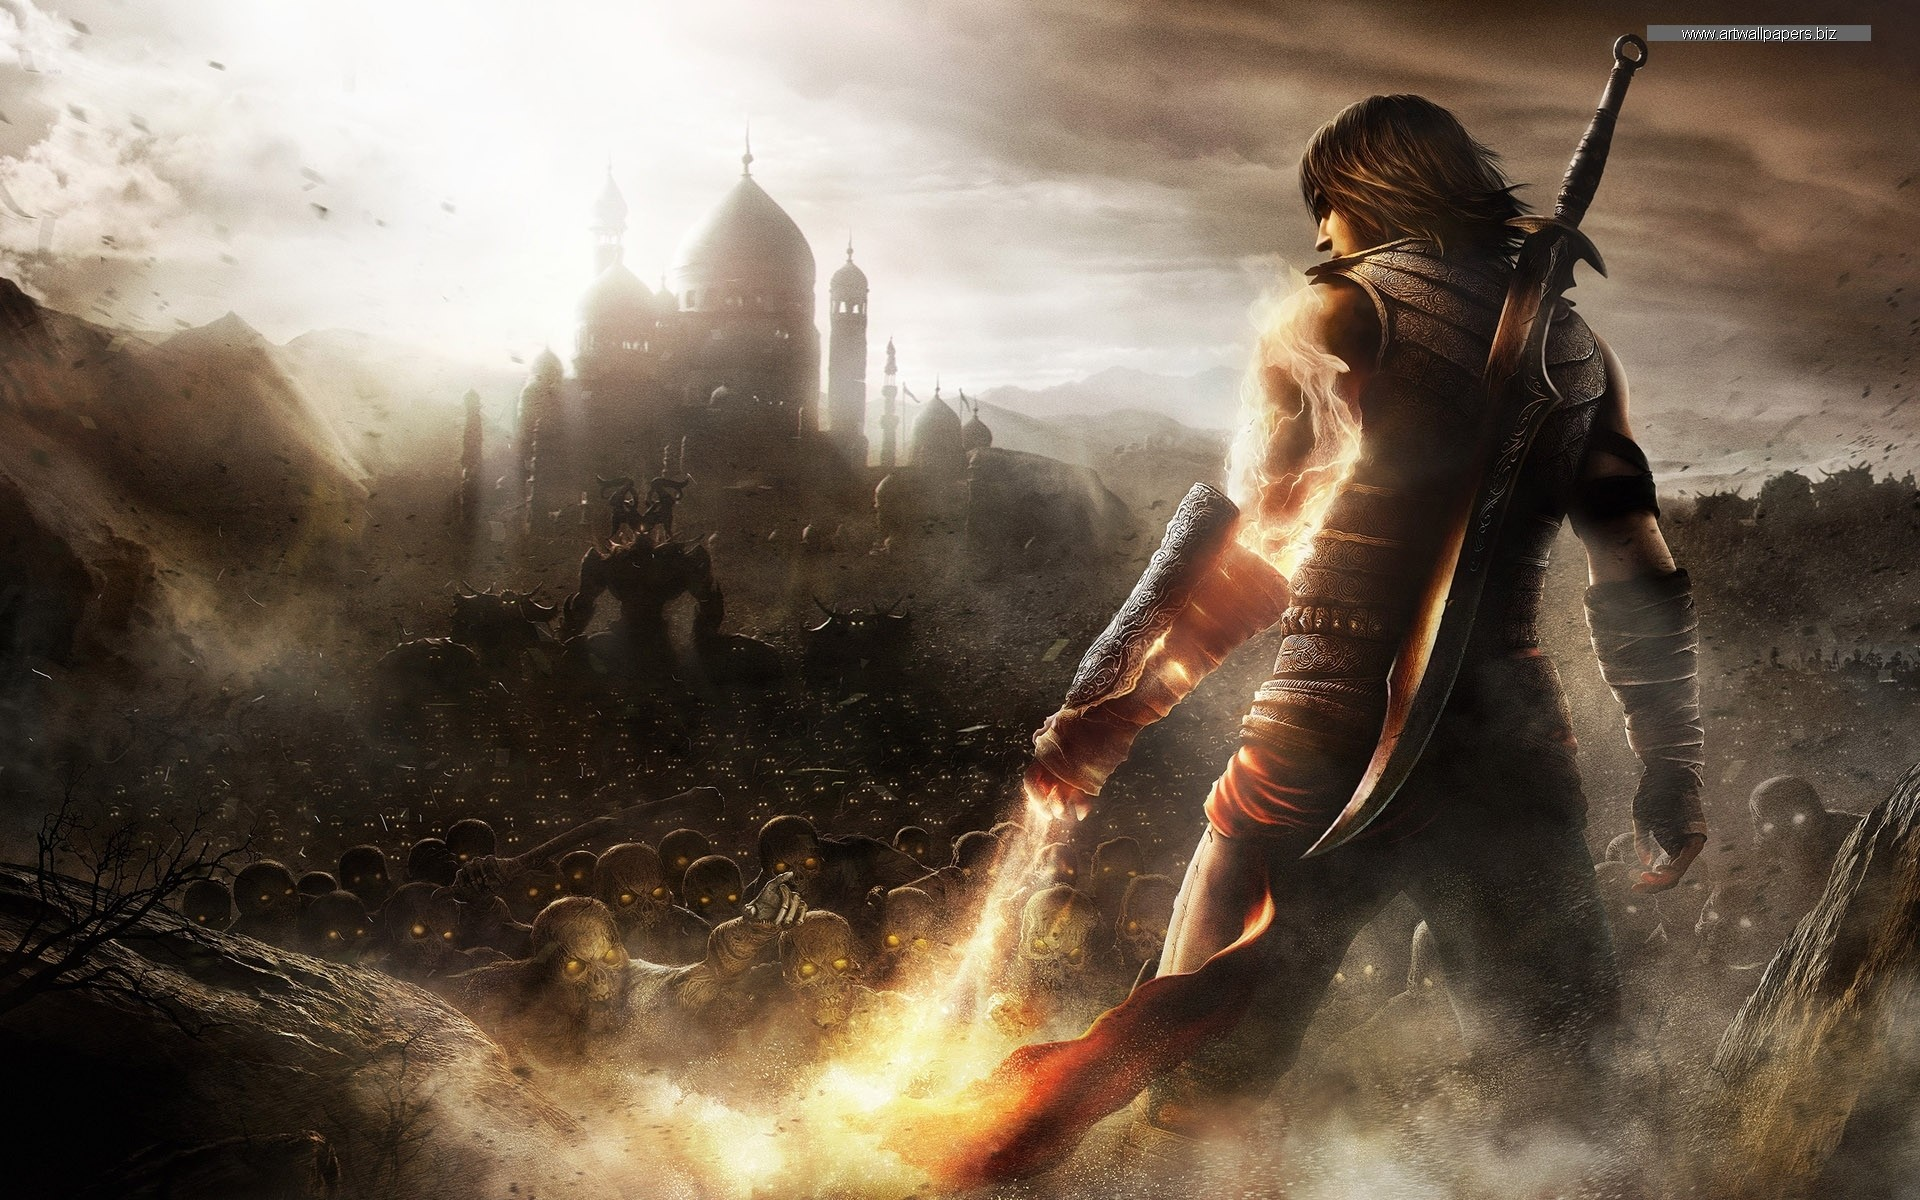 Game Widescreen Wallpapers Full HD 1080p Games Wallpapers